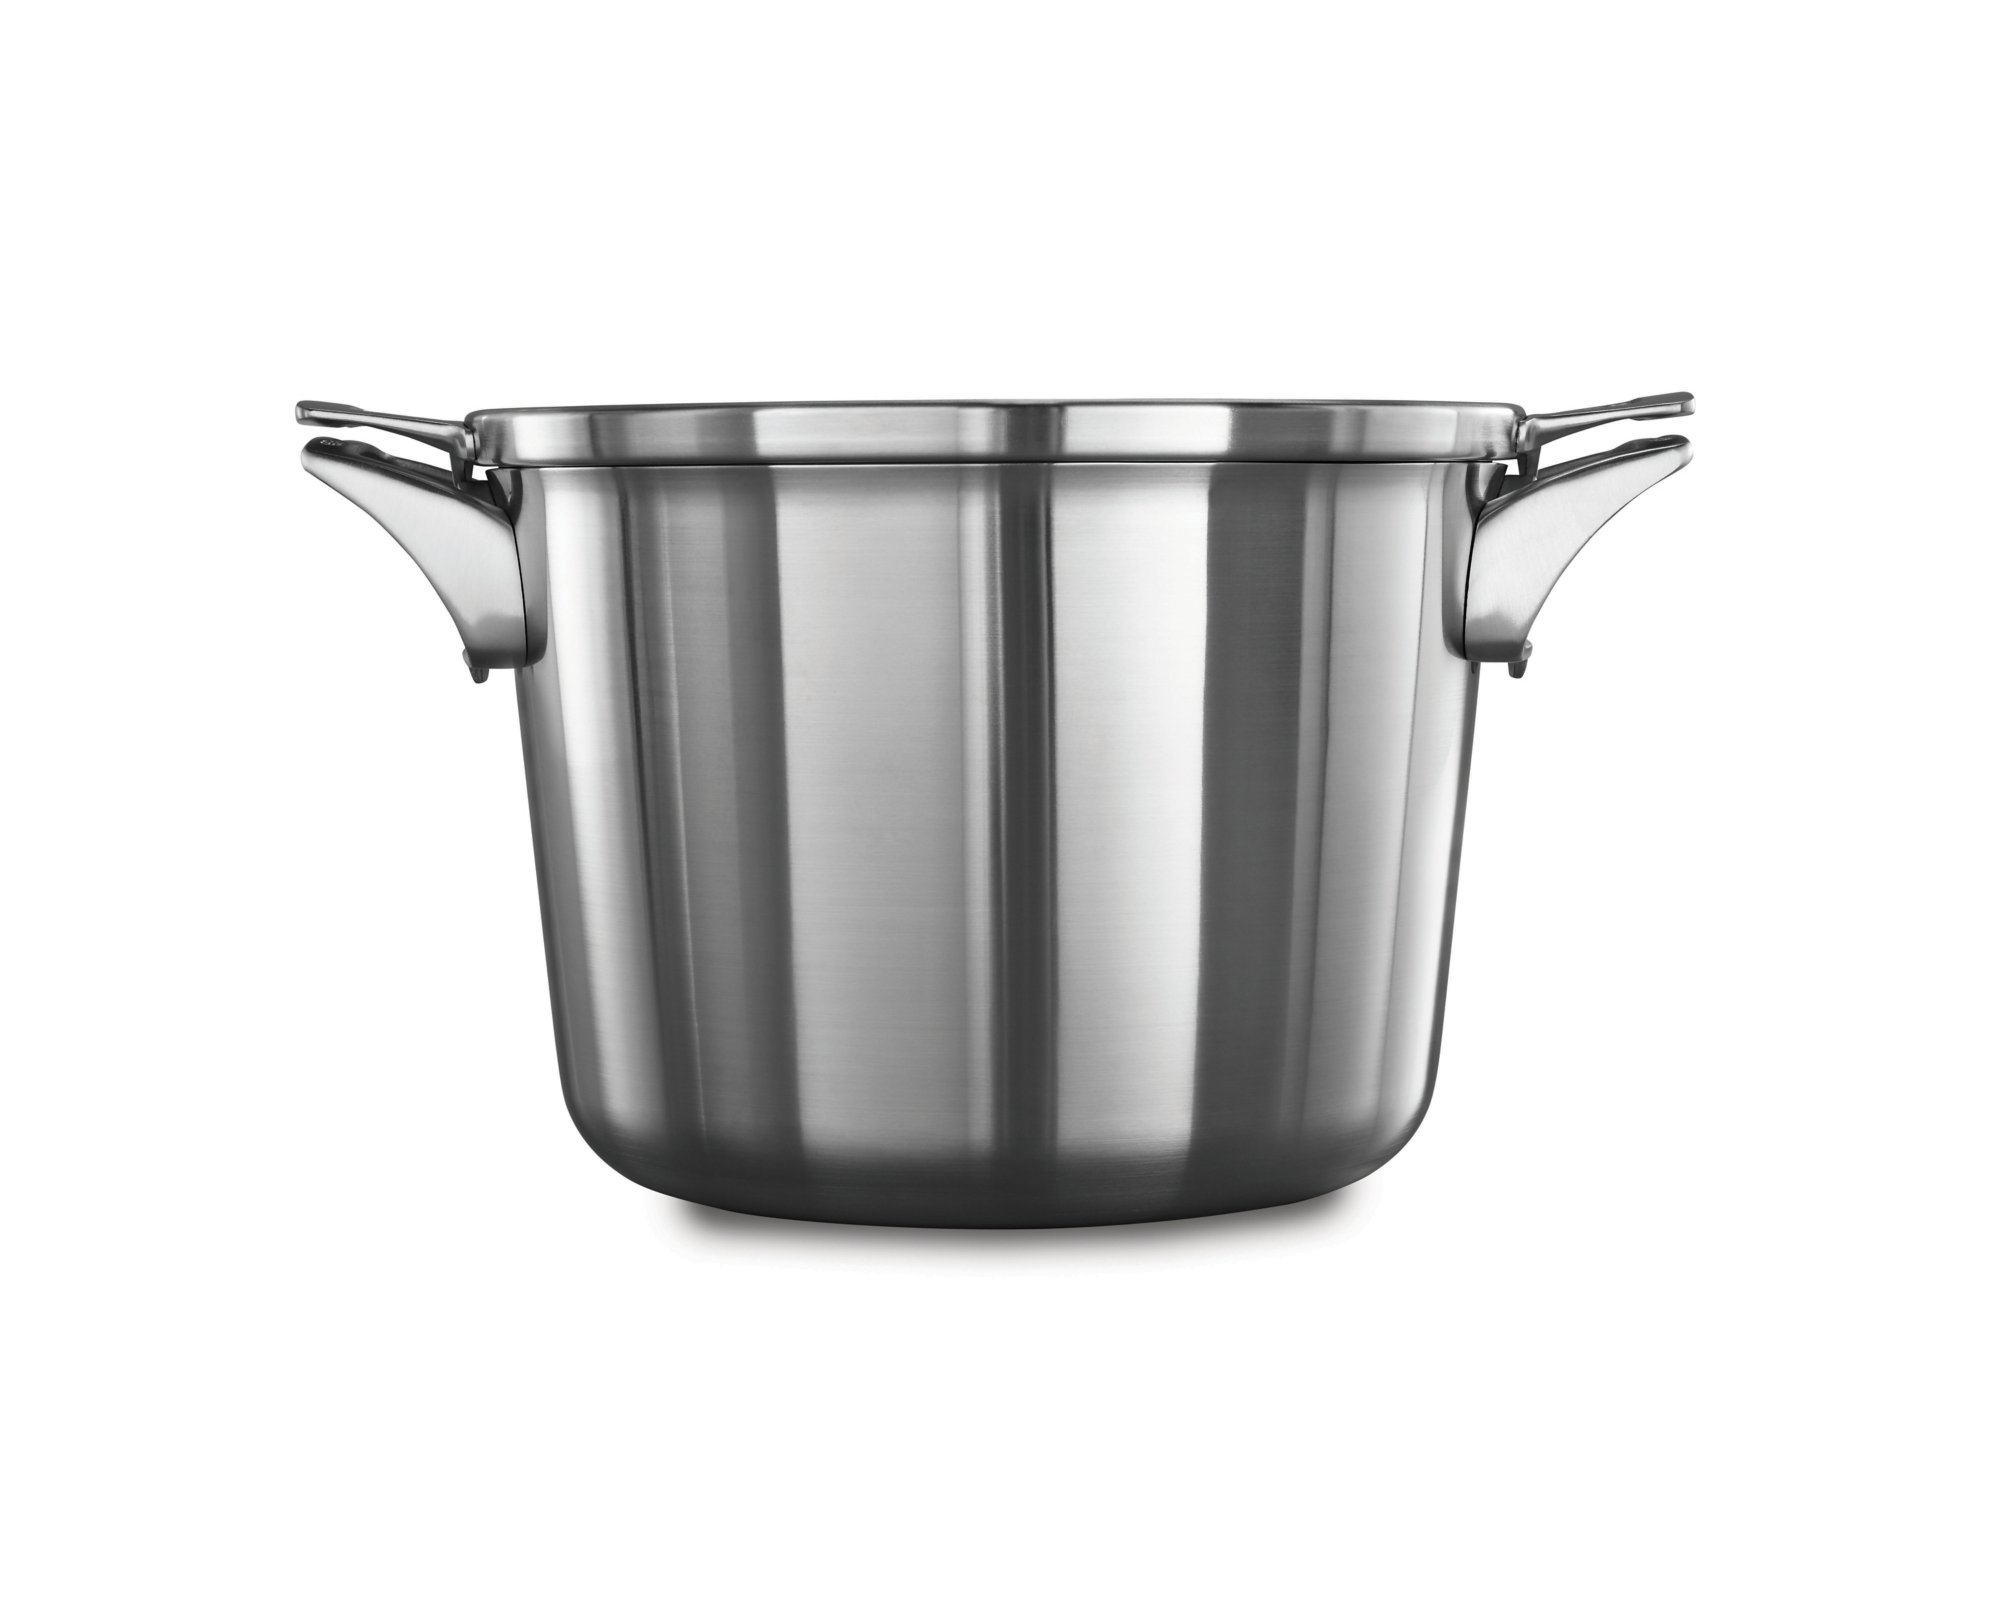 Calphalon Premier™ Space Saving Stainless Steel 8 qt. Stock Pot with Cover